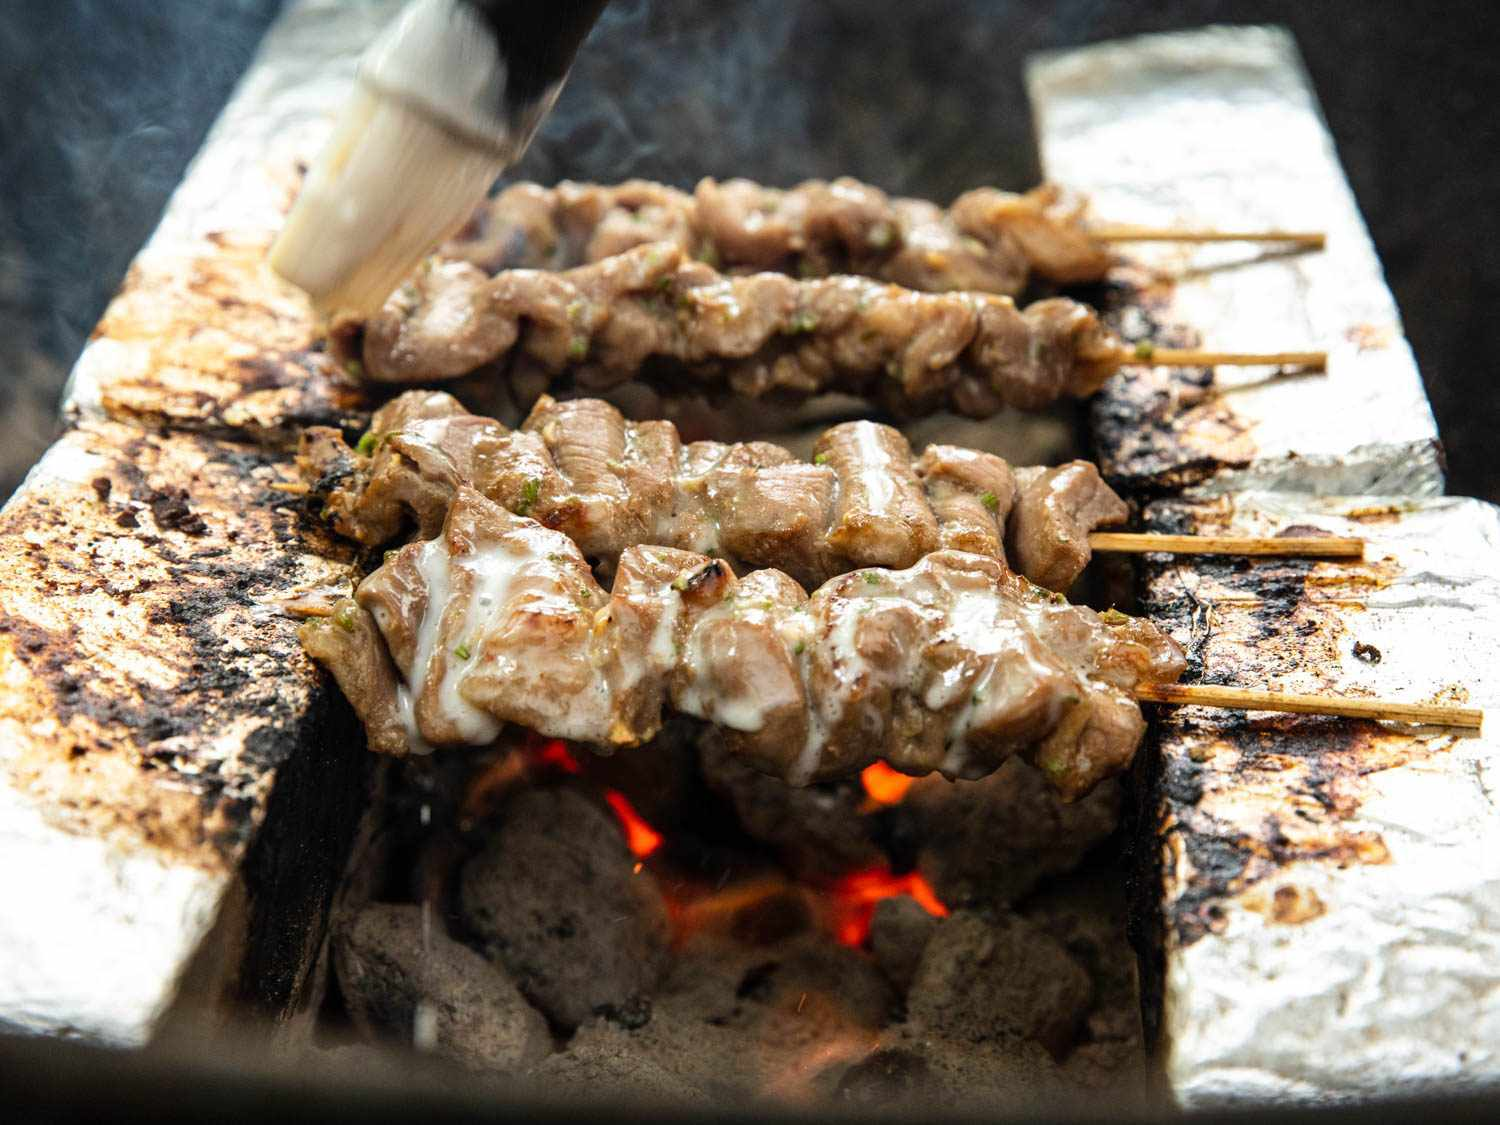 Several Thai pork skewers cooking over charcoal, suspended between two parallel rows of foil-wrapped bricks